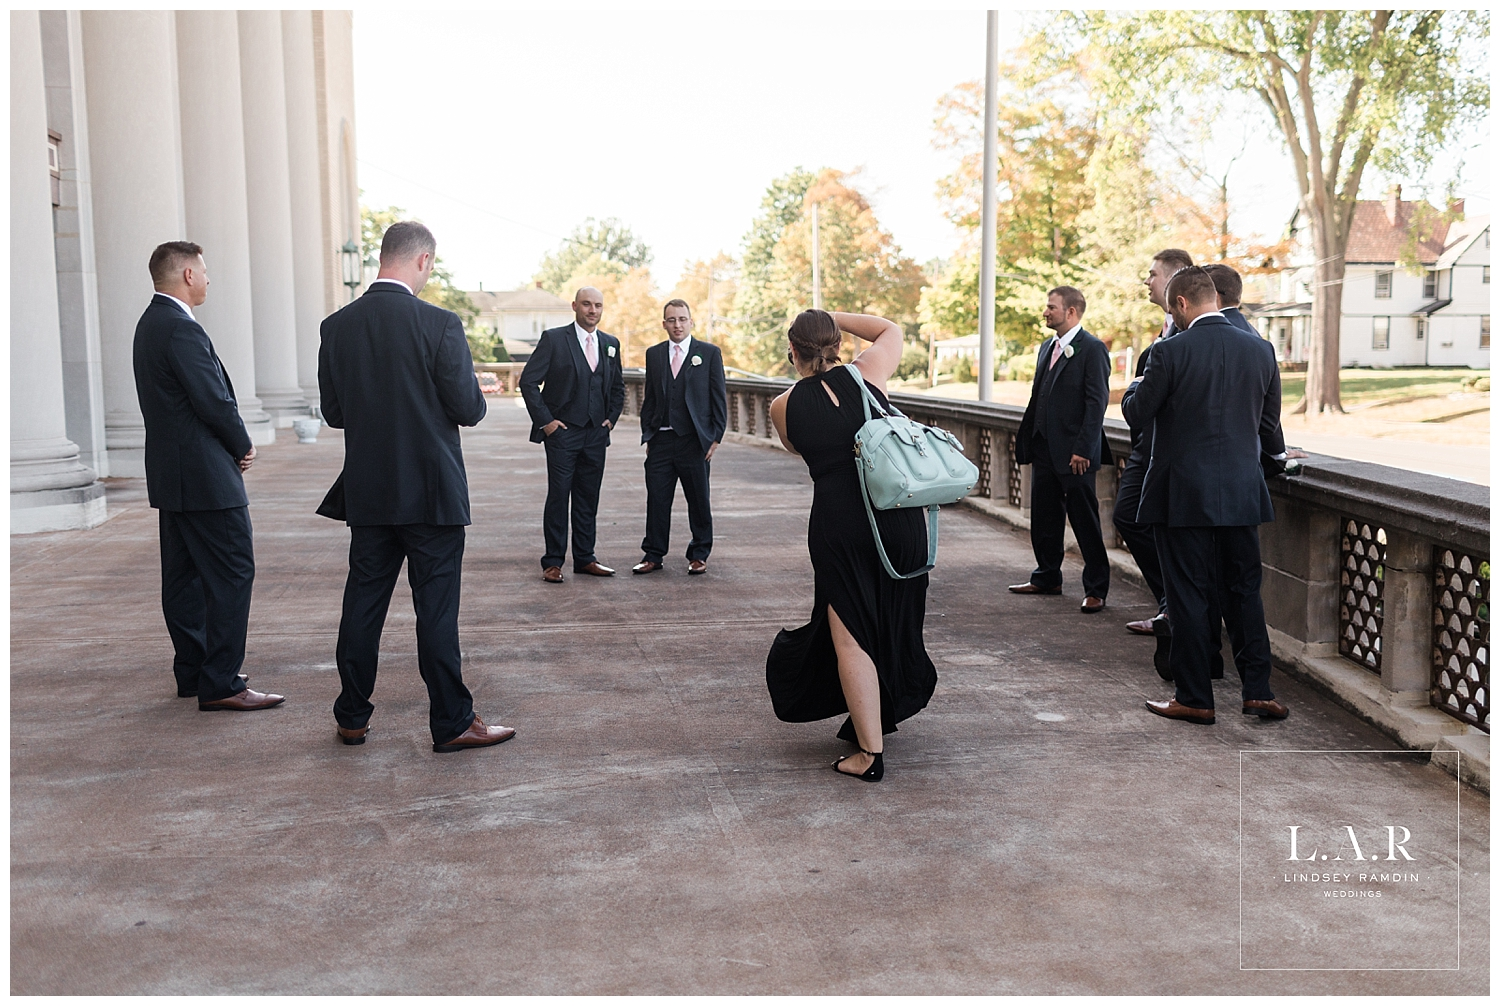 I worked with Leslie from Cusano Photography for the first time this season,and even though I threw her to the wolves (I mean groomsmen) right off the bat, she didn't miss a beat!